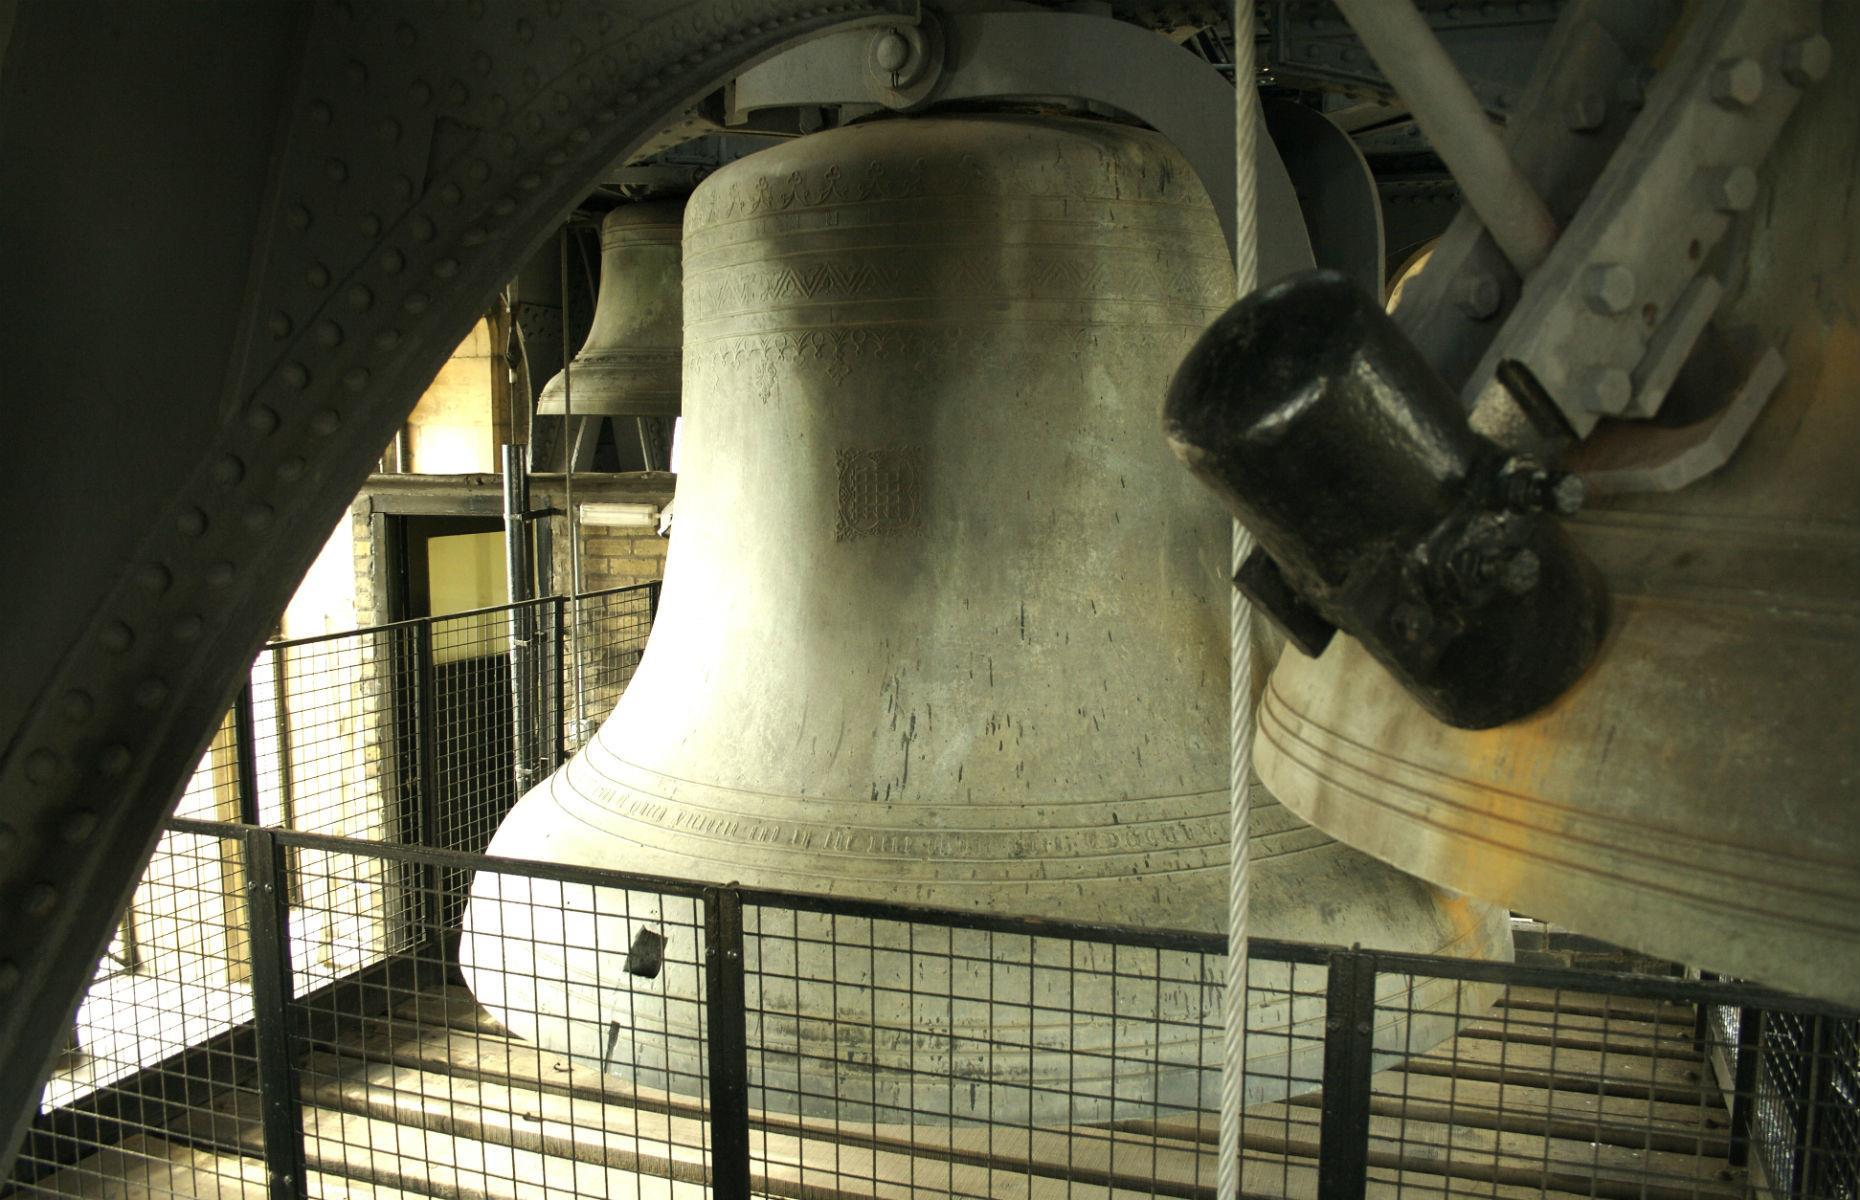 Slide 21 of 45: Despite its famous gong sound – which won't sound again until 2021 – Big Ben is far from perfect: it's cracked. In 1859, a new bell that had replaced a previously broken one also cracked, meaning Big Ben didn't chime for four years. The solution, rather than a third new bell, was to turn it so the hammer struck a different spot. The hammer was also replaced by a lighter version, and a square was cut into the bell to stop the crack from spreading. Tower tours are currently suspended while works take place, but there are free monthly talk and virtual tours available instead.